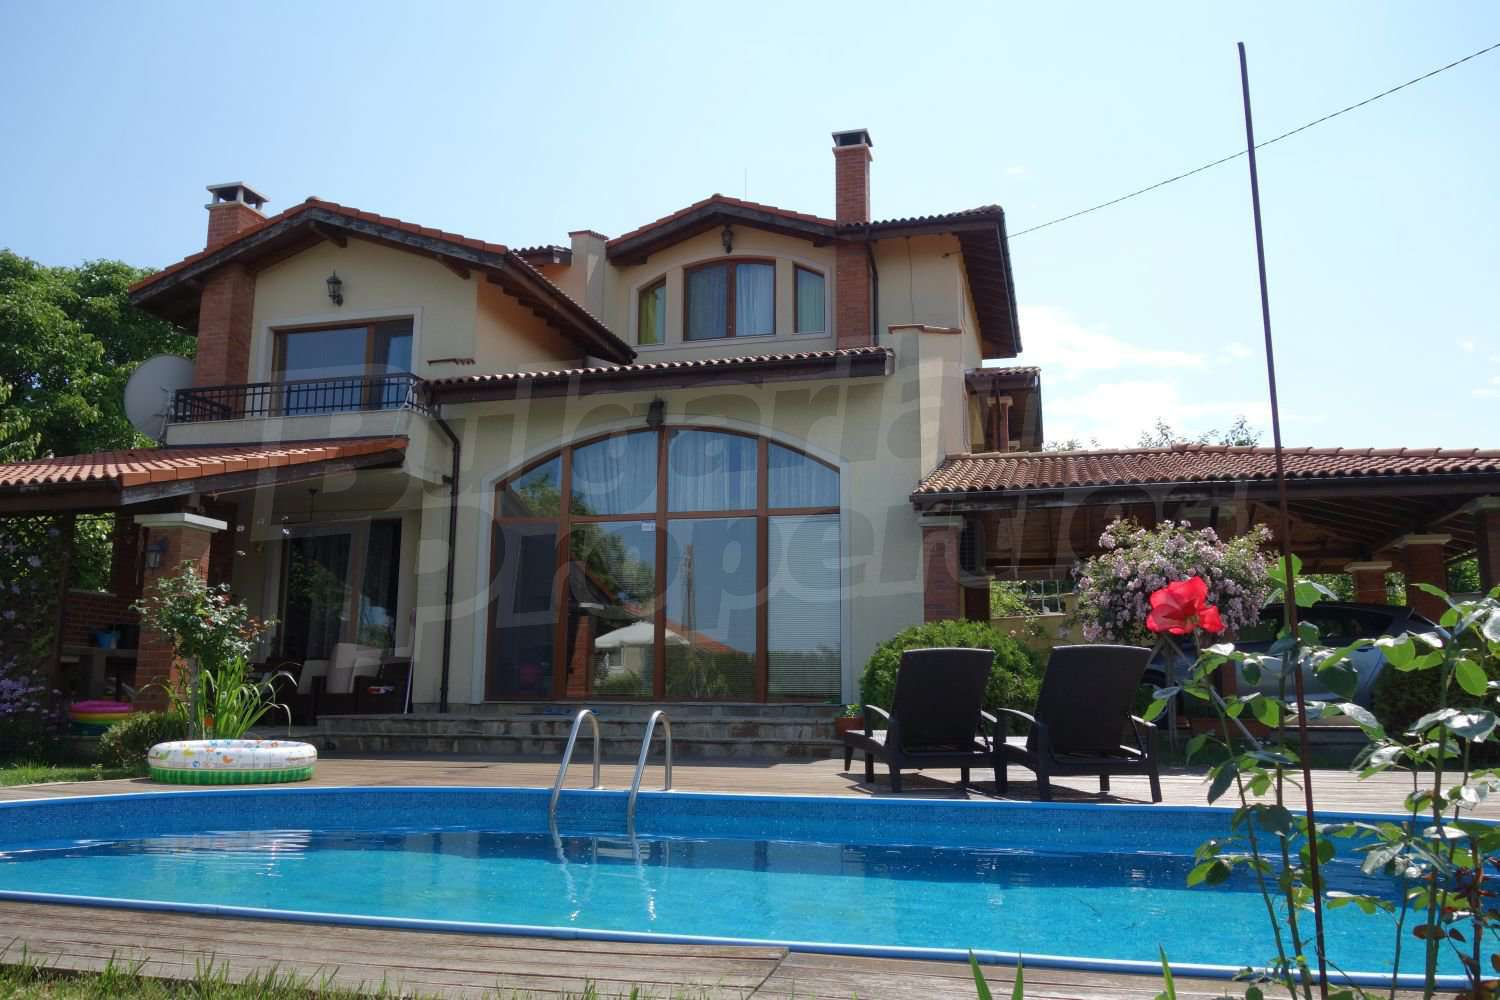 House for sale in Osenovo, Bulgaria  Excellent 3-storey House With